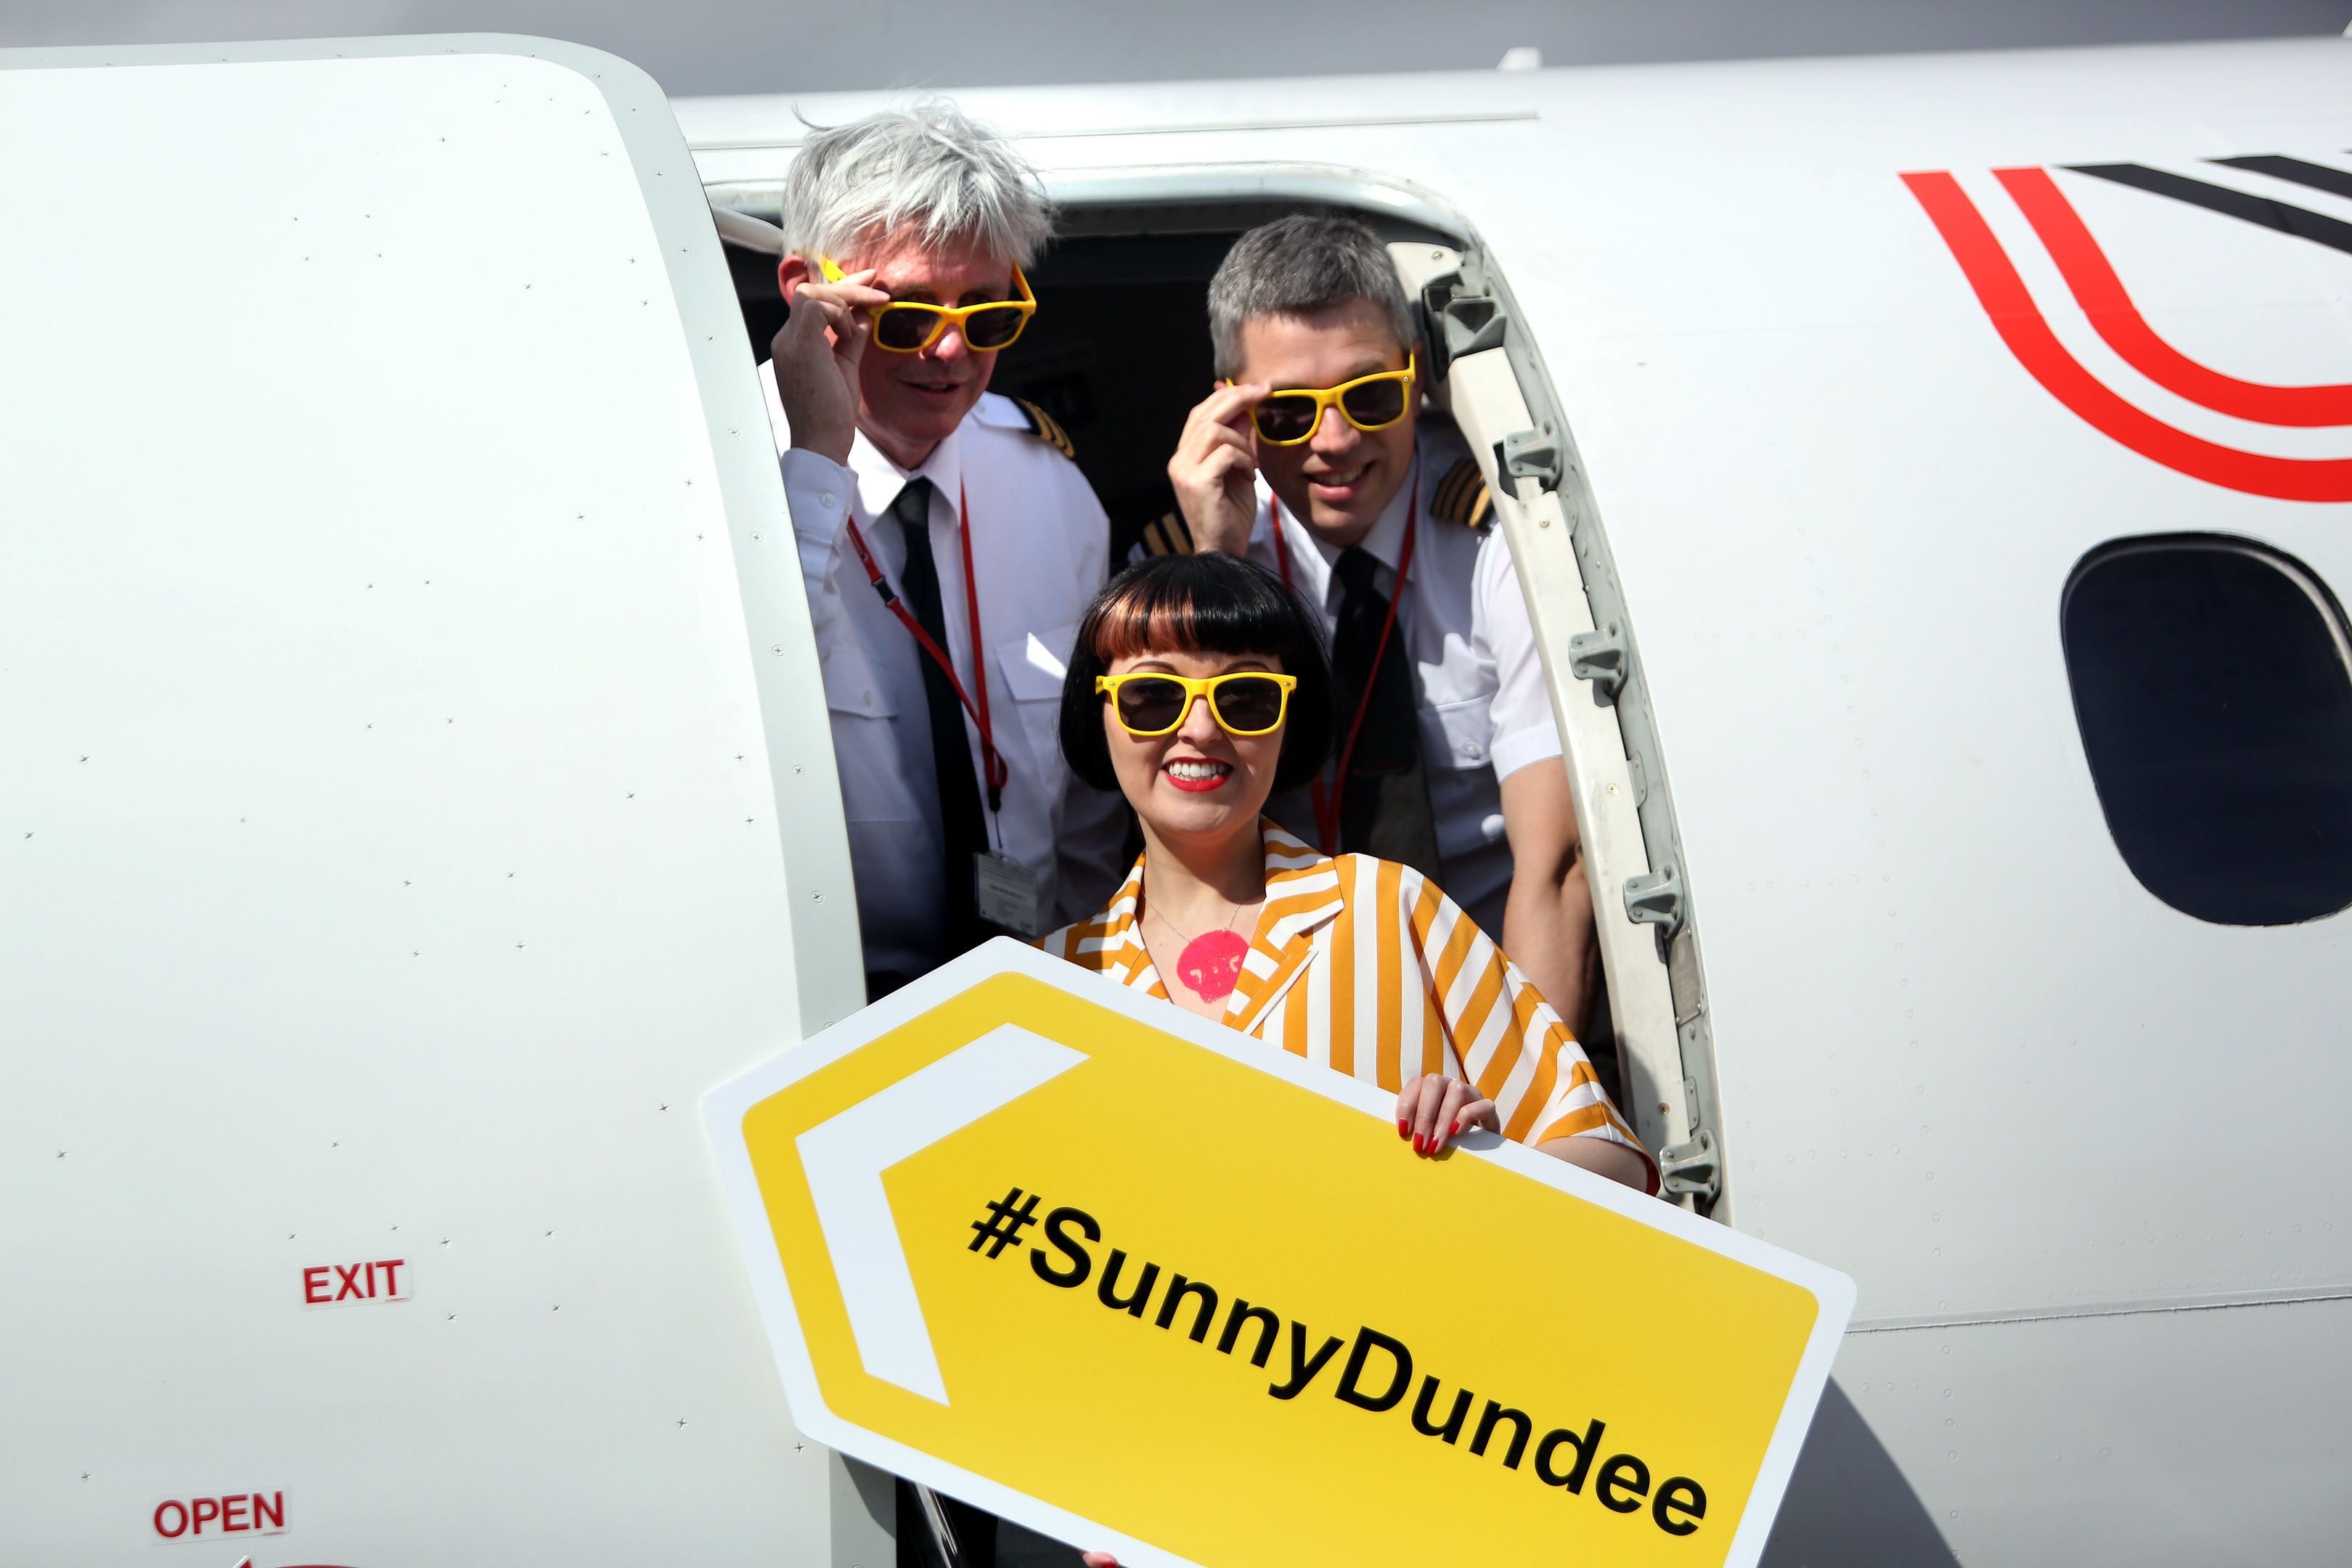 Cpt Mike Cryle, First Officer Peter Nugent and V&A Dundee design champion Kirsty Stevens on the Logan Air flight at Dundee Airport.